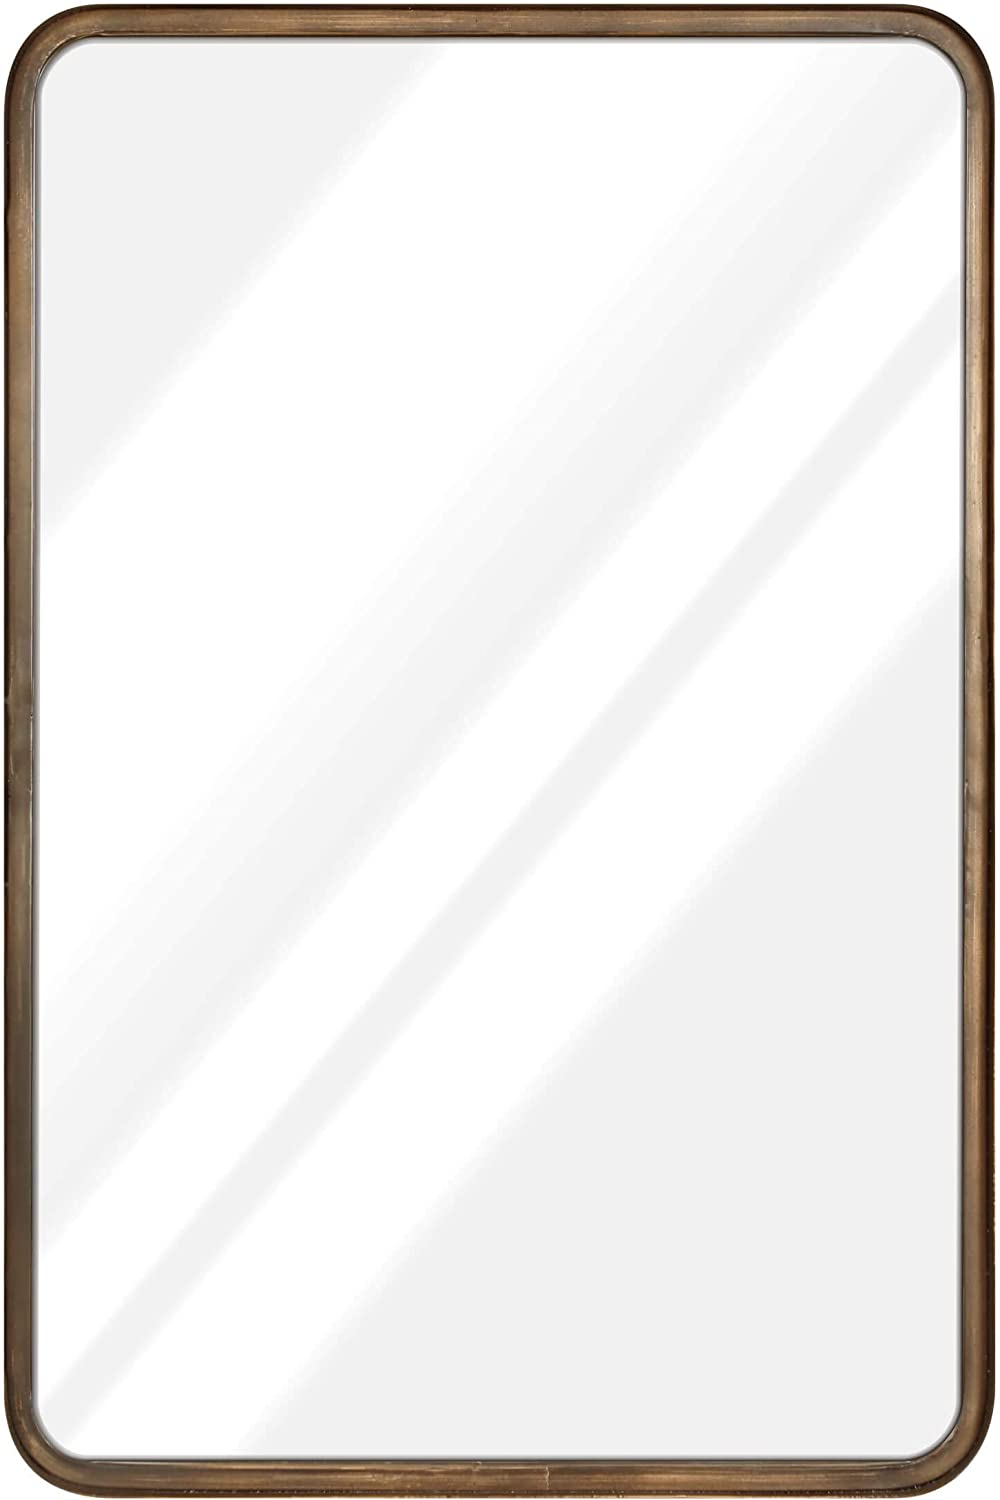 20 x 30  Large Rectangle Mirror - Beautiful Brushed gold Wall Mirror - Handcrafted Accent Mirror - Metal Framed Decorative Mirrors For Wall - Hanging Mirror - Large Wall Mirror For Bathroom & Entryway